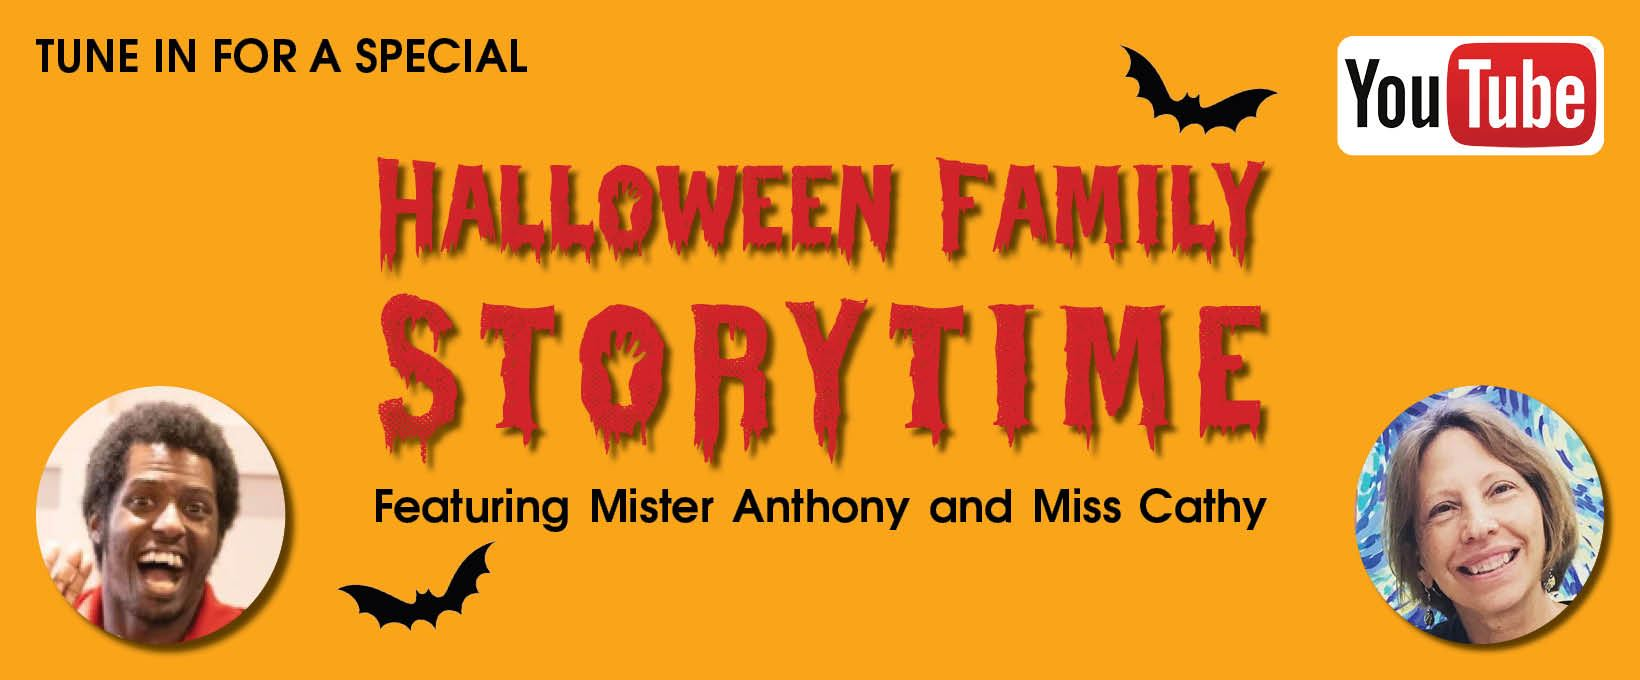 Celebrate Halloween with a Halloween Family Storytime!